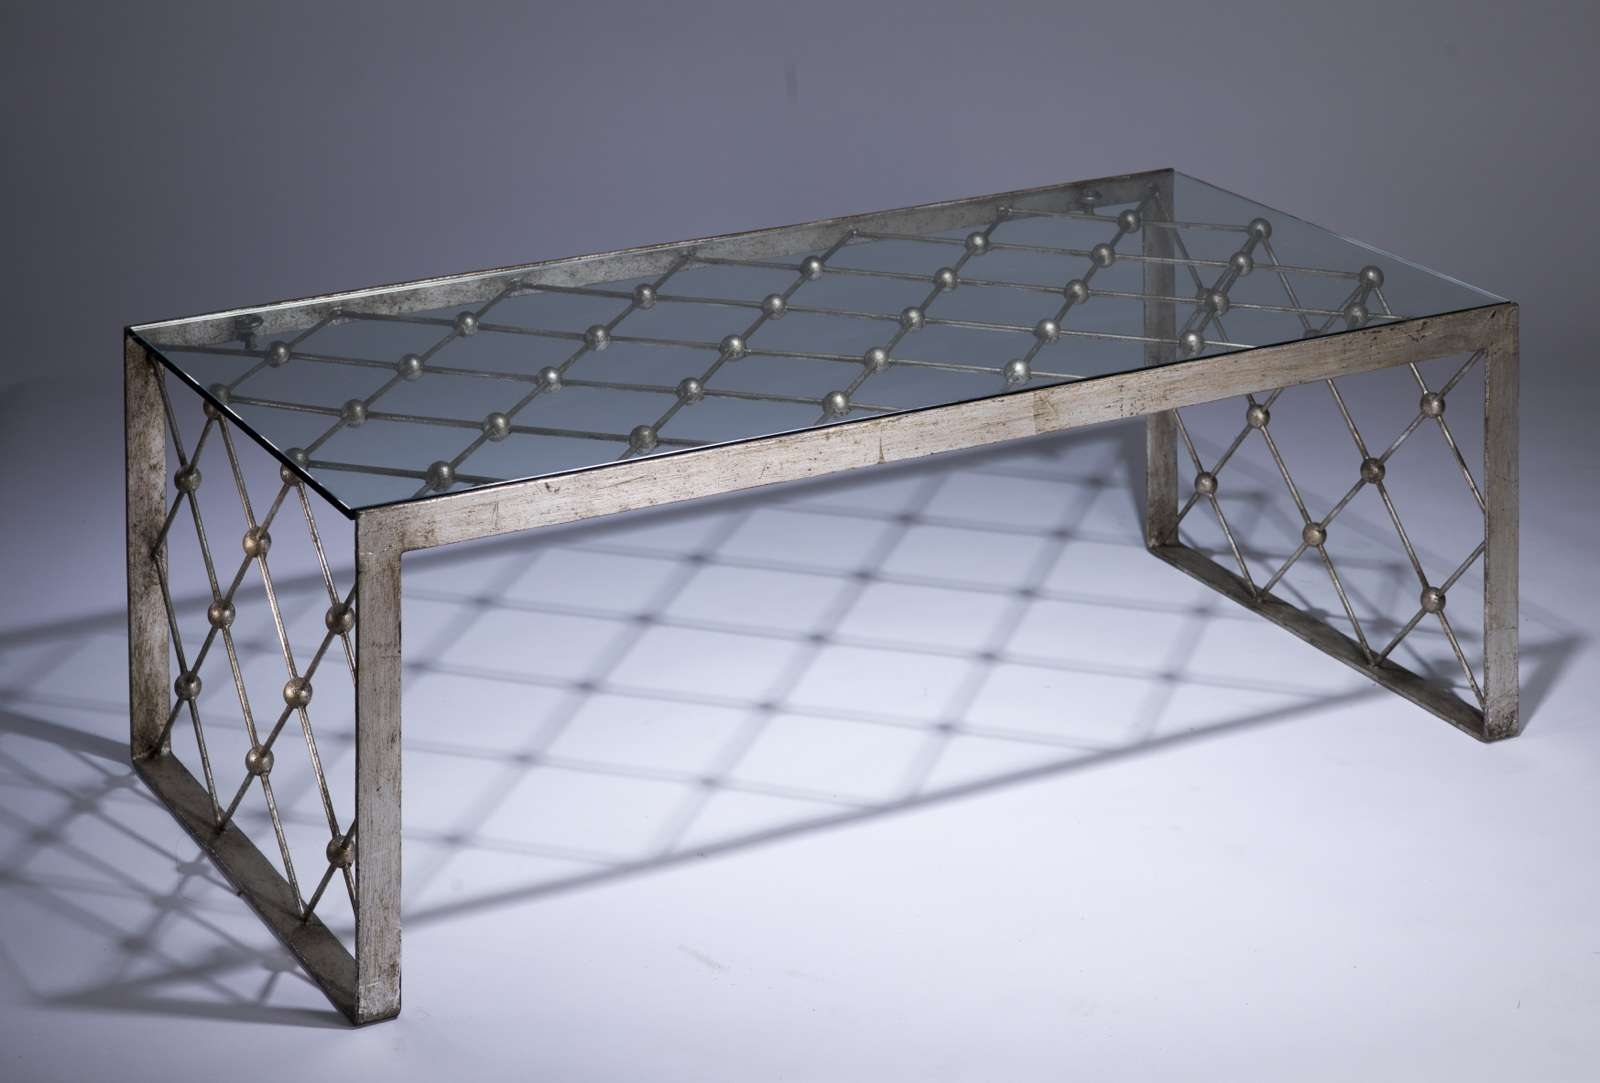 Wrought Iron Net Coffee Table In Distressed Silver Leaf Finish Regarding Most Popular Iron Glass Coffee Table (View 18 of 20)